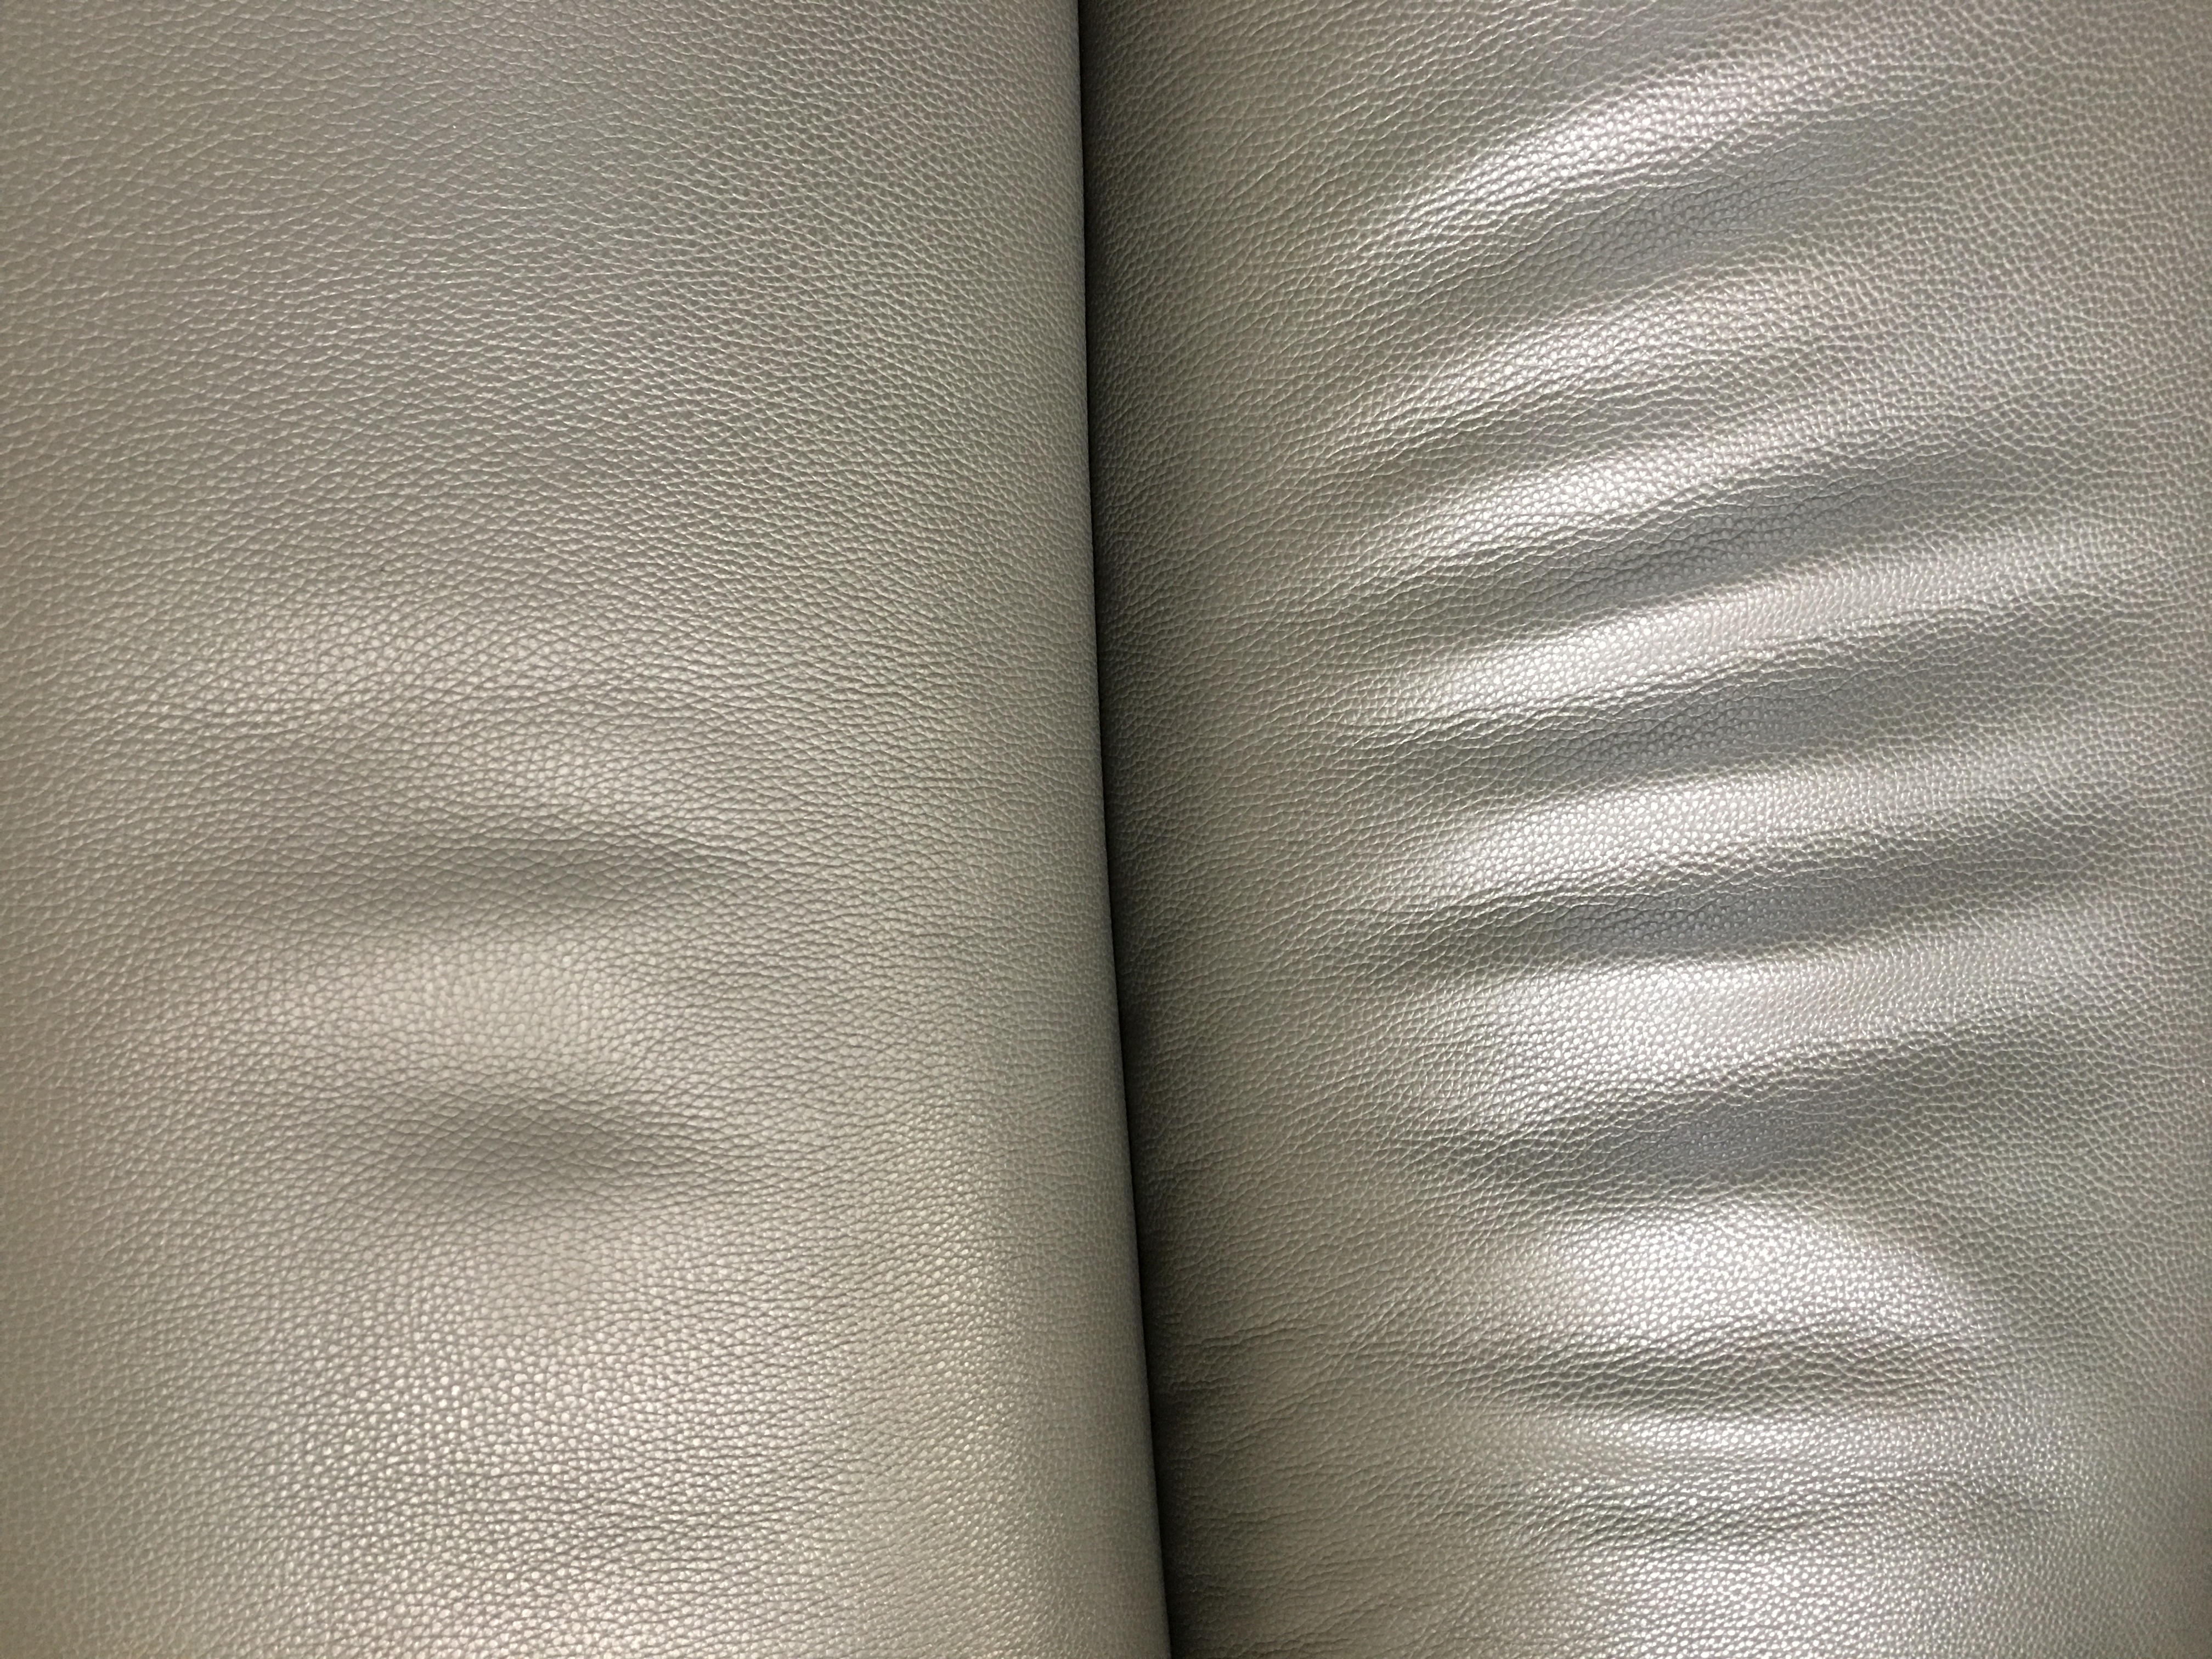 ce32536c0ba1 We paid much money for this motorized leather sofa and can not resolve it to  our satisfaction with Macy's. they won't budge. I will not be buying any ...